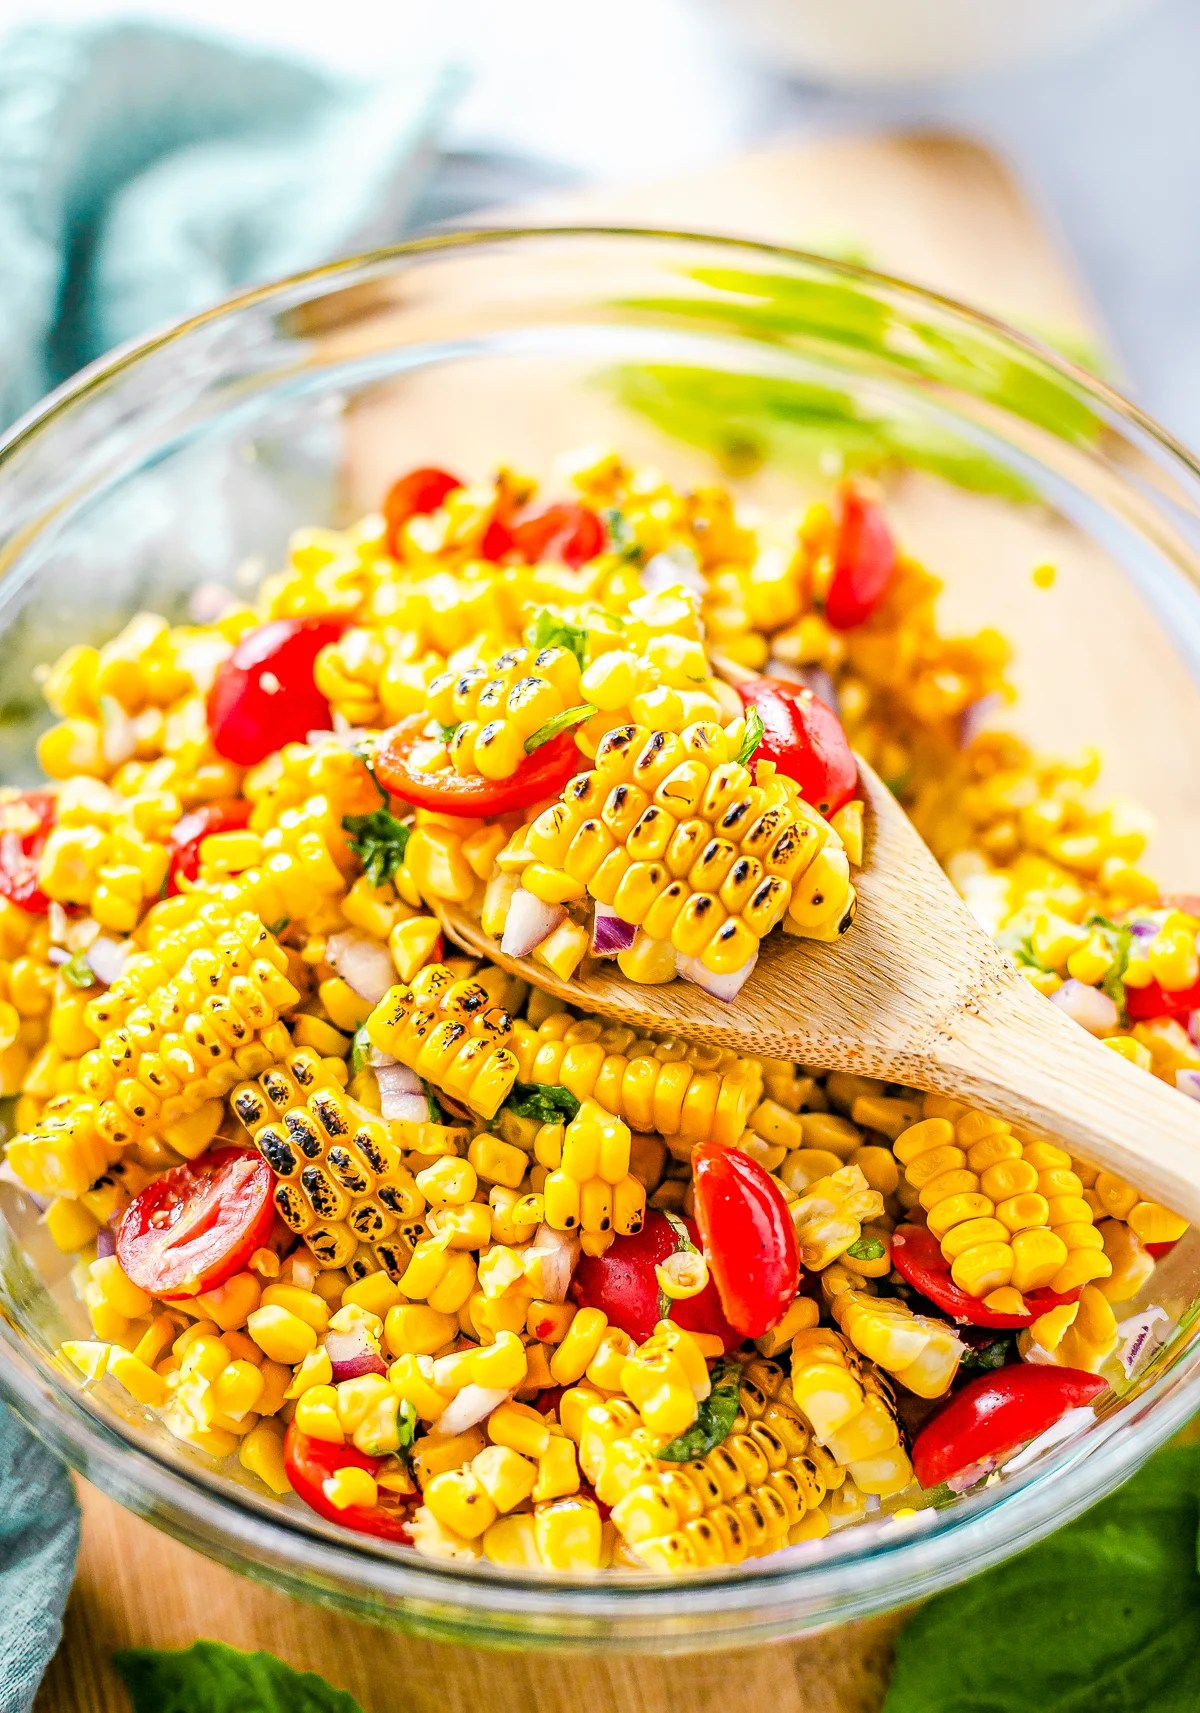 Spoon holding up some Corn and Tomato Salad